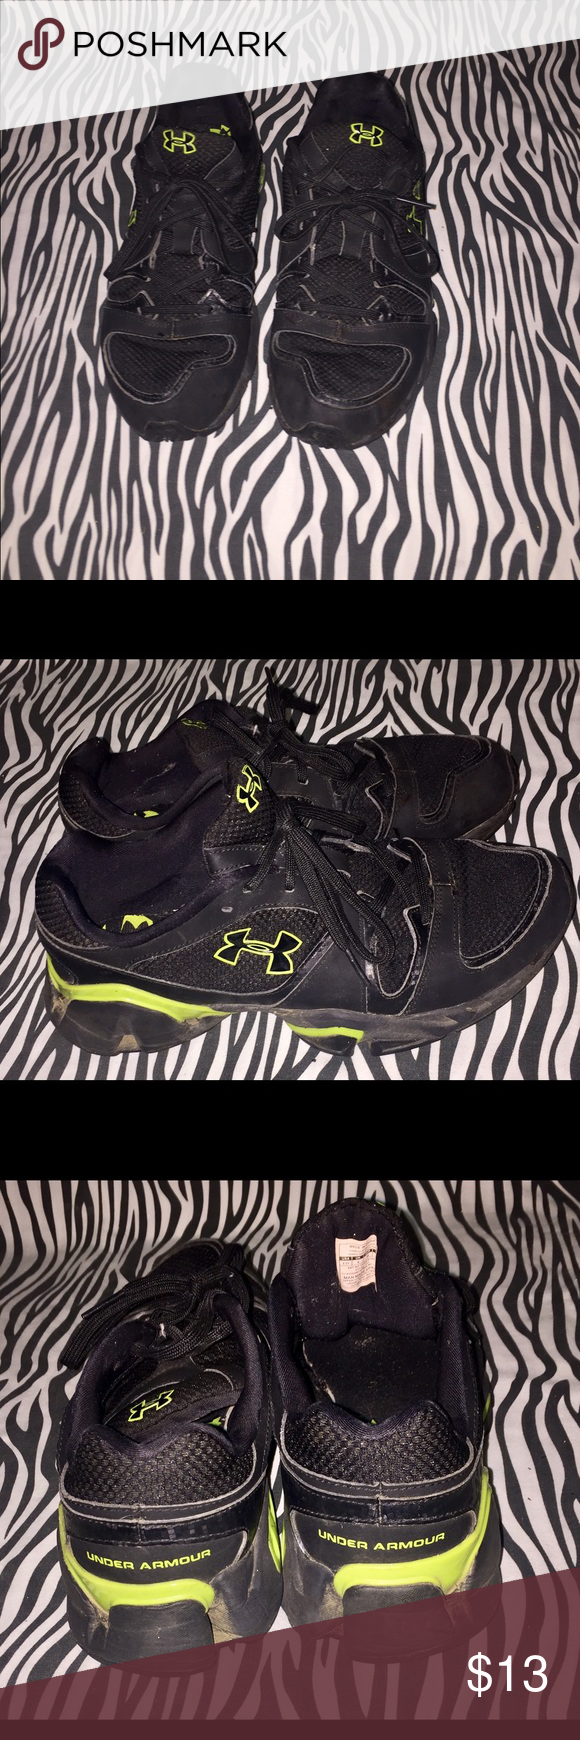 6.5y Under Armour Sneakers Black and Lime Green. Shoes have been washed and disinfected. Shoes of on the toes and bottoms are in good condition with a lot of grip. Under Armour Shoes Sneakers